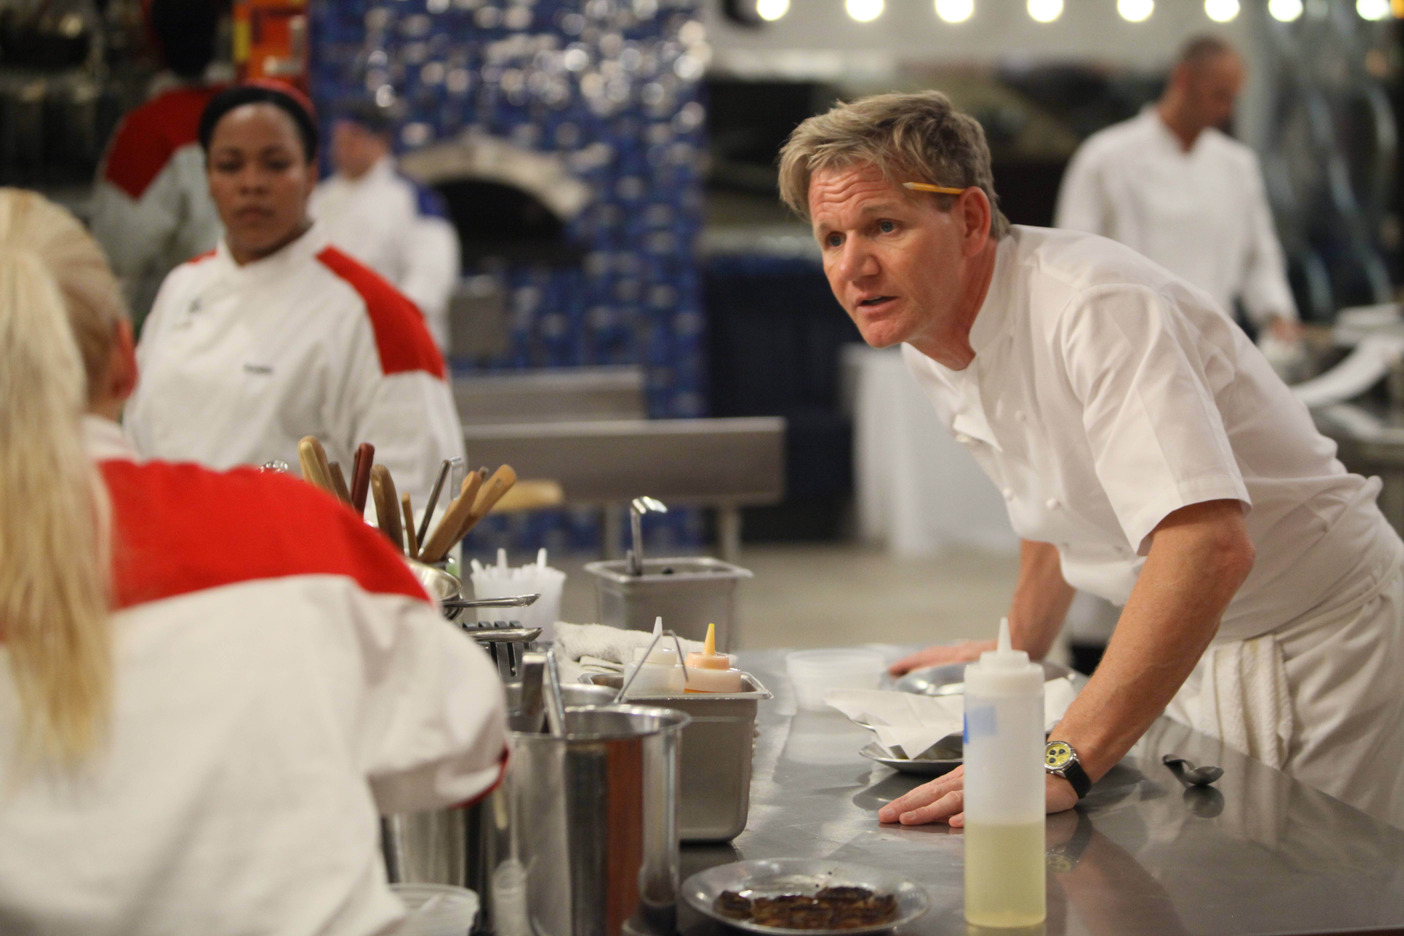 `Hell's Kitchen`: Chef Gordon Ramsay is shown with some of the season 12 competitors. The new season begins this fall on FOX. (photo by Patrick Wymore/FOX).